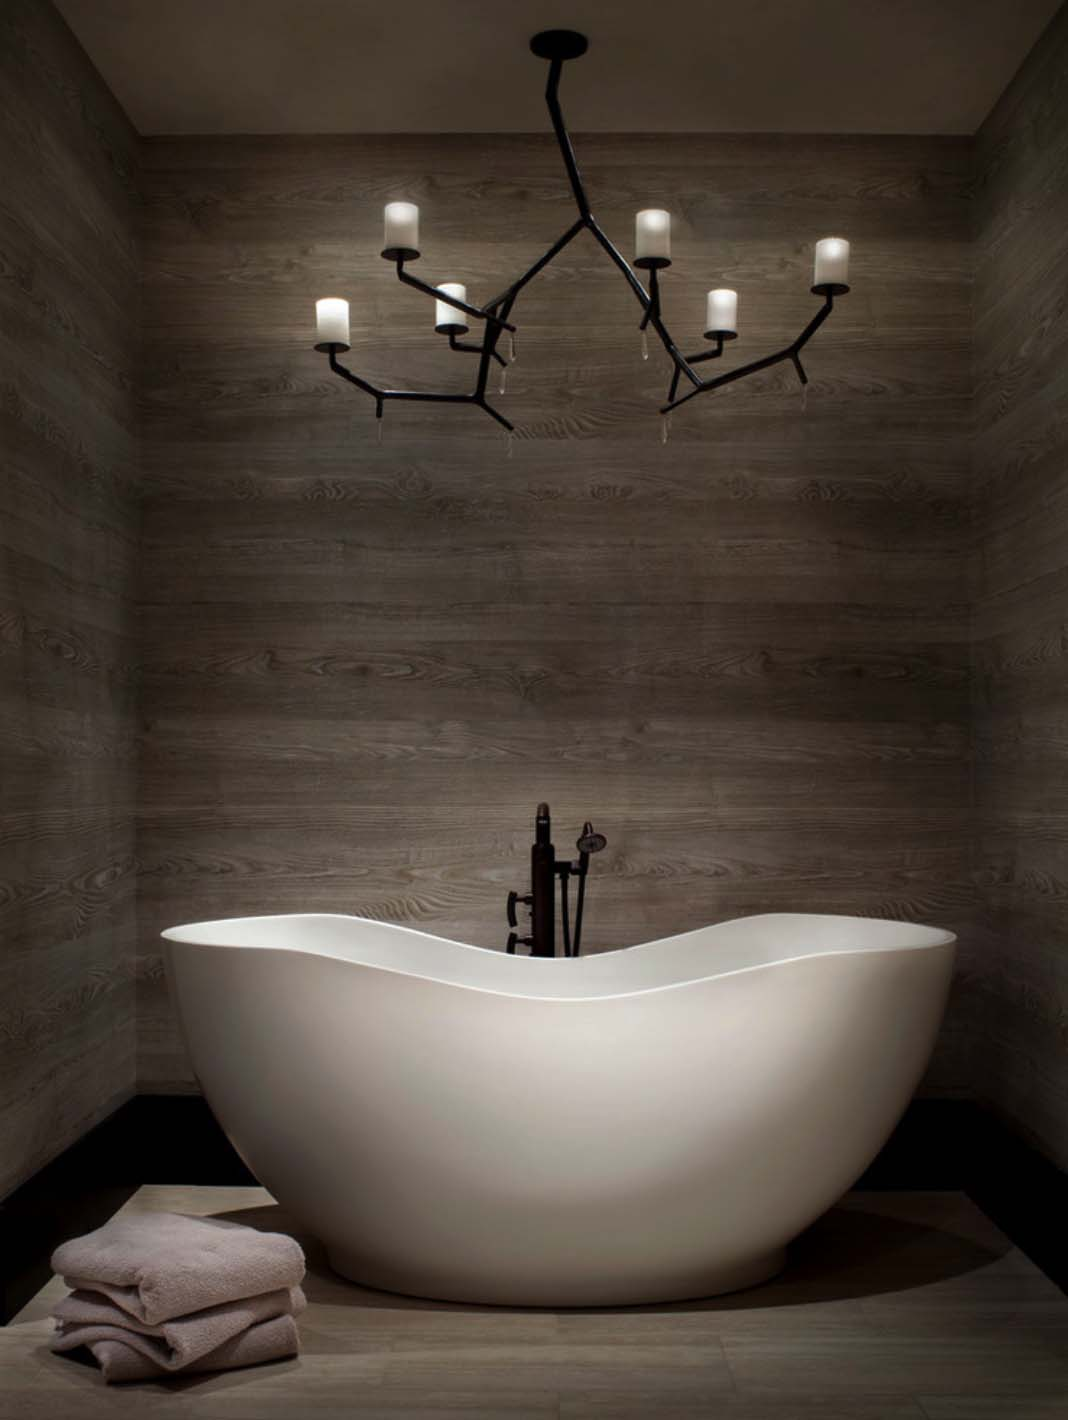 Freestanding Tubs Bathroom Ideas 38 1 Kindesign